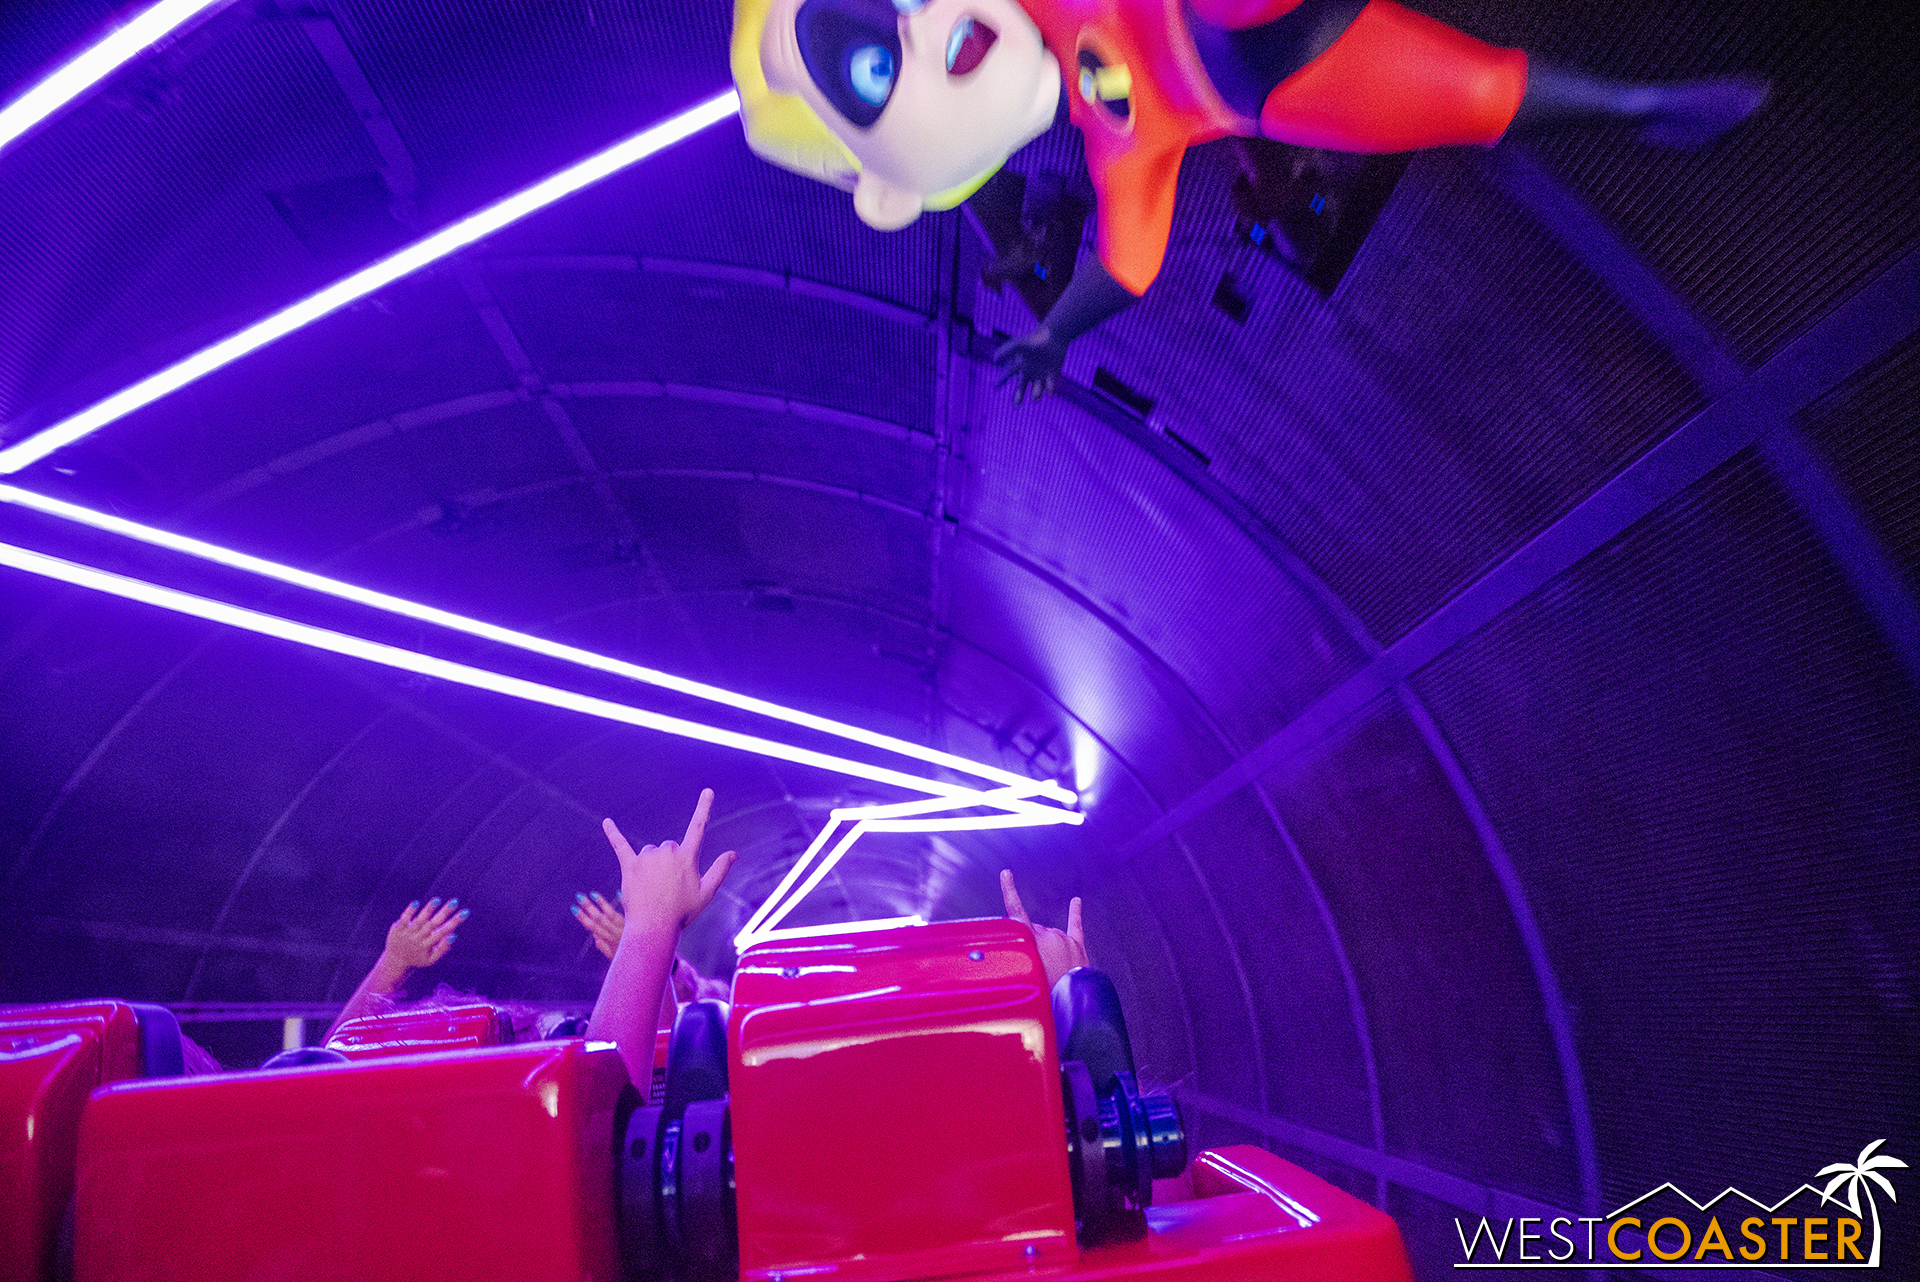 We launch into the first scream tunnel and find Jack Jack shooting lasers.